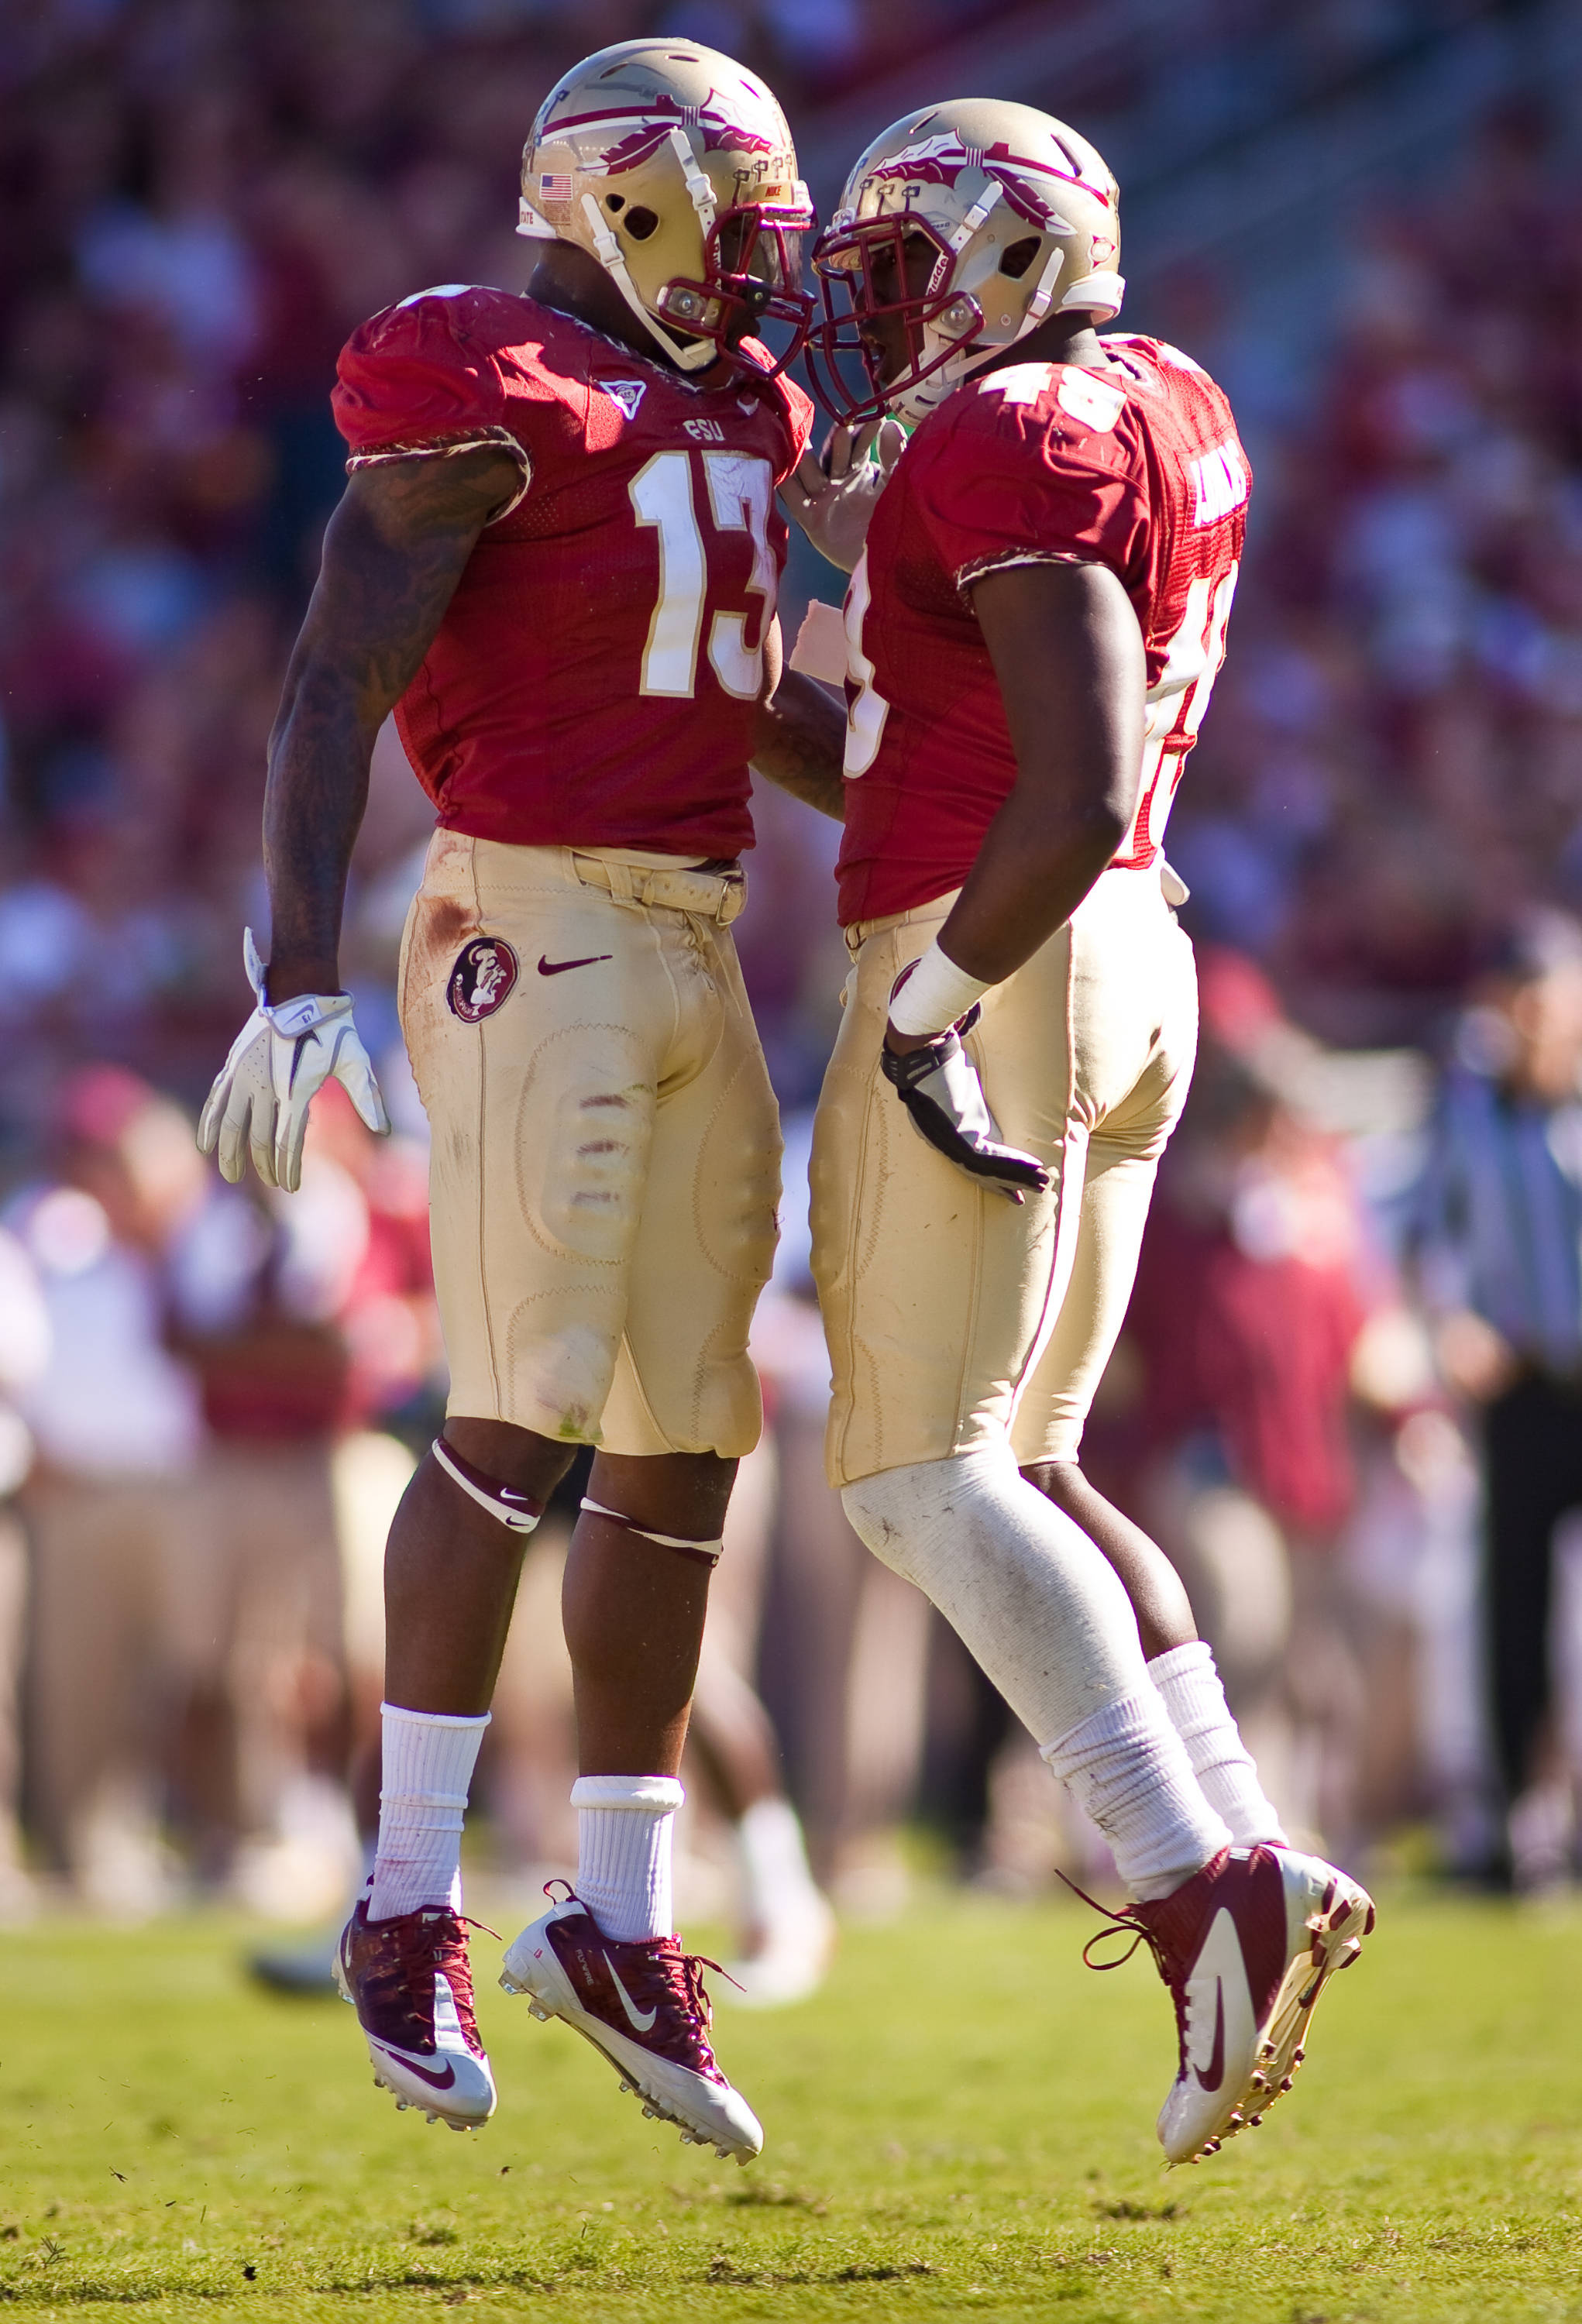 Nigel Bradham (13), Brandon Jenkins (49) celebrate after a big sack against Maryland